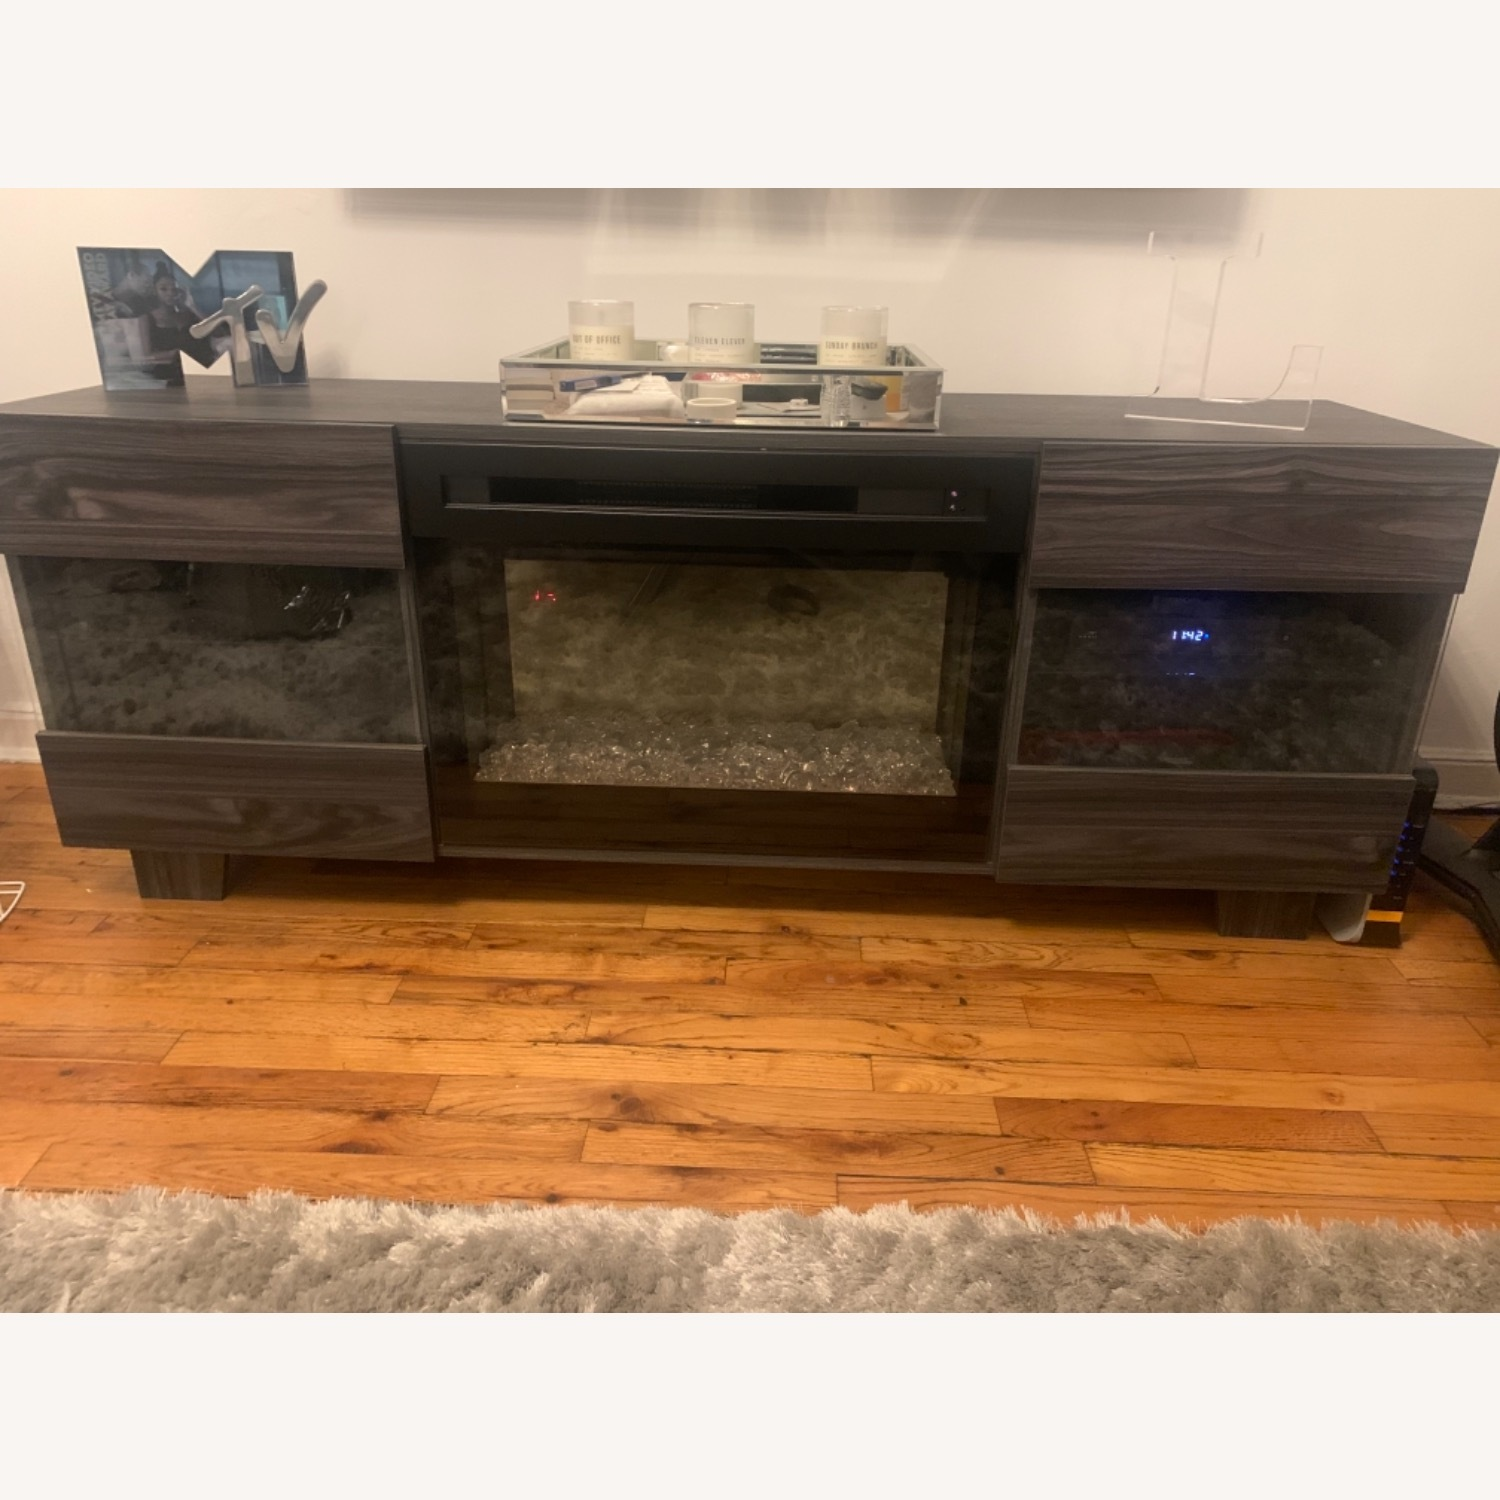 Wayfair Max TV Stand with Electric Fireplace by Dimplex - image-3